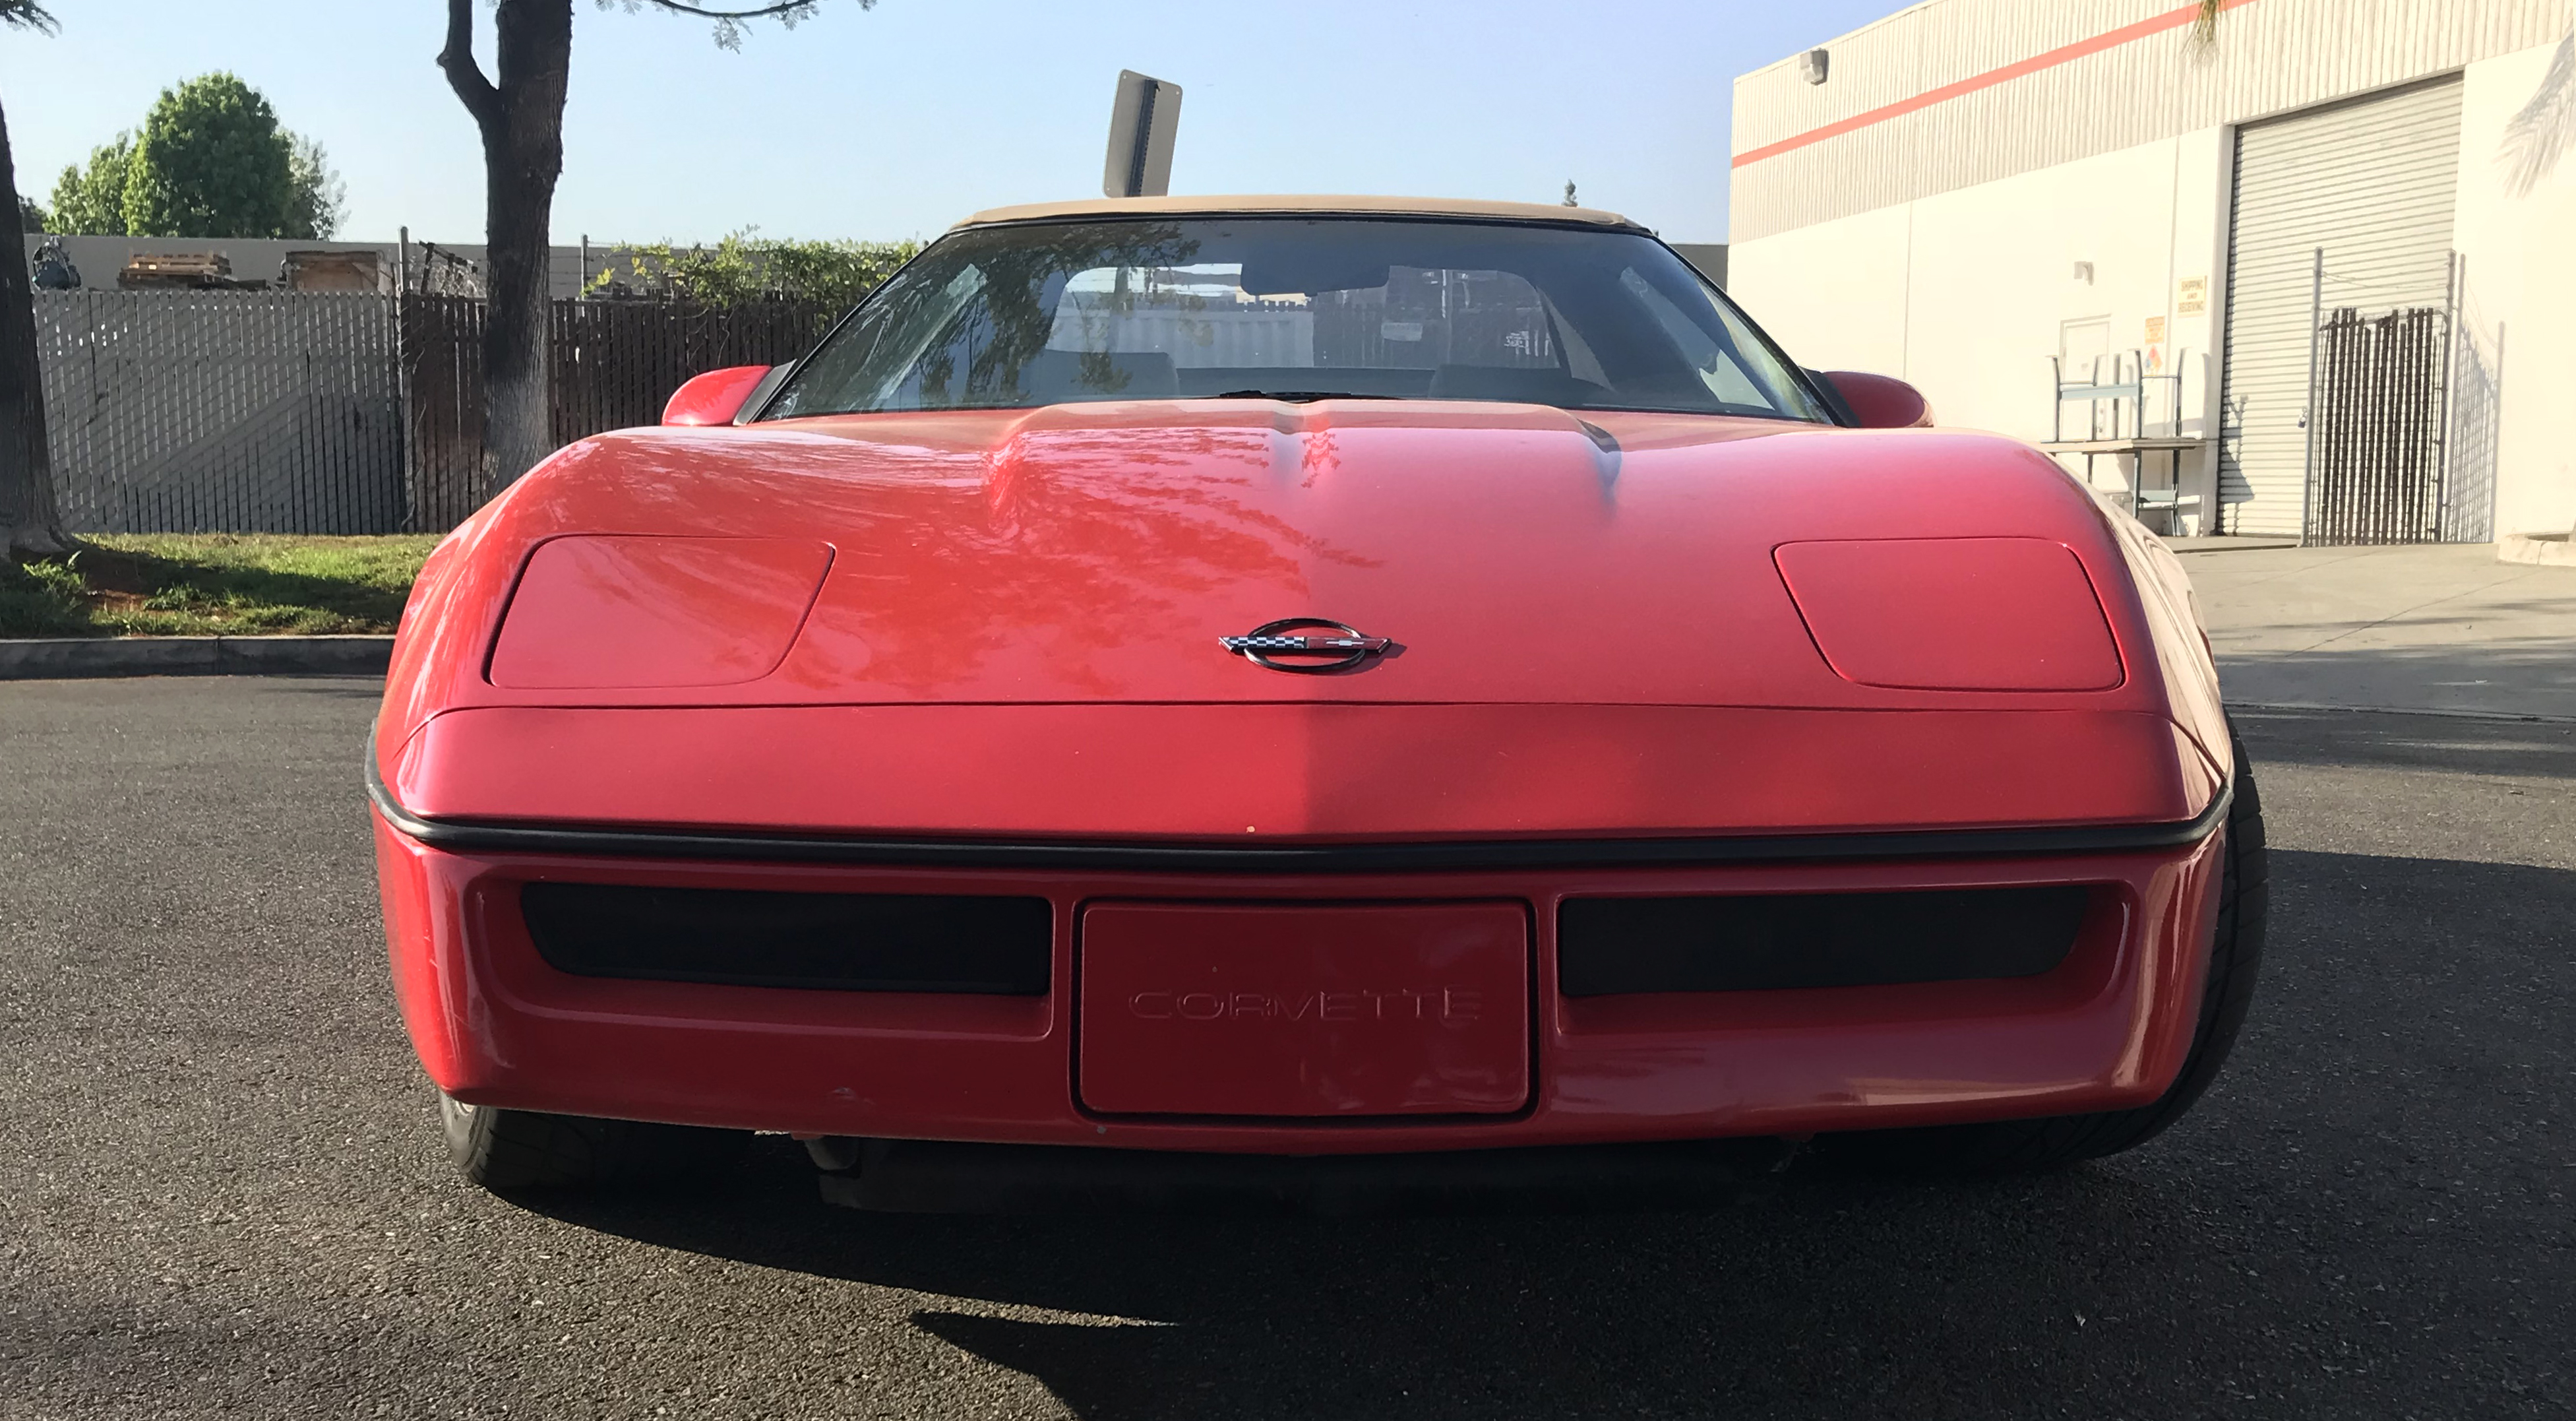 1991-1996 CHEVROLET CORVETTE ALL MODELS,TURN SIGNAL COVER, 2 PC. WITH RUBBER WRAP AROUND, SMOKE